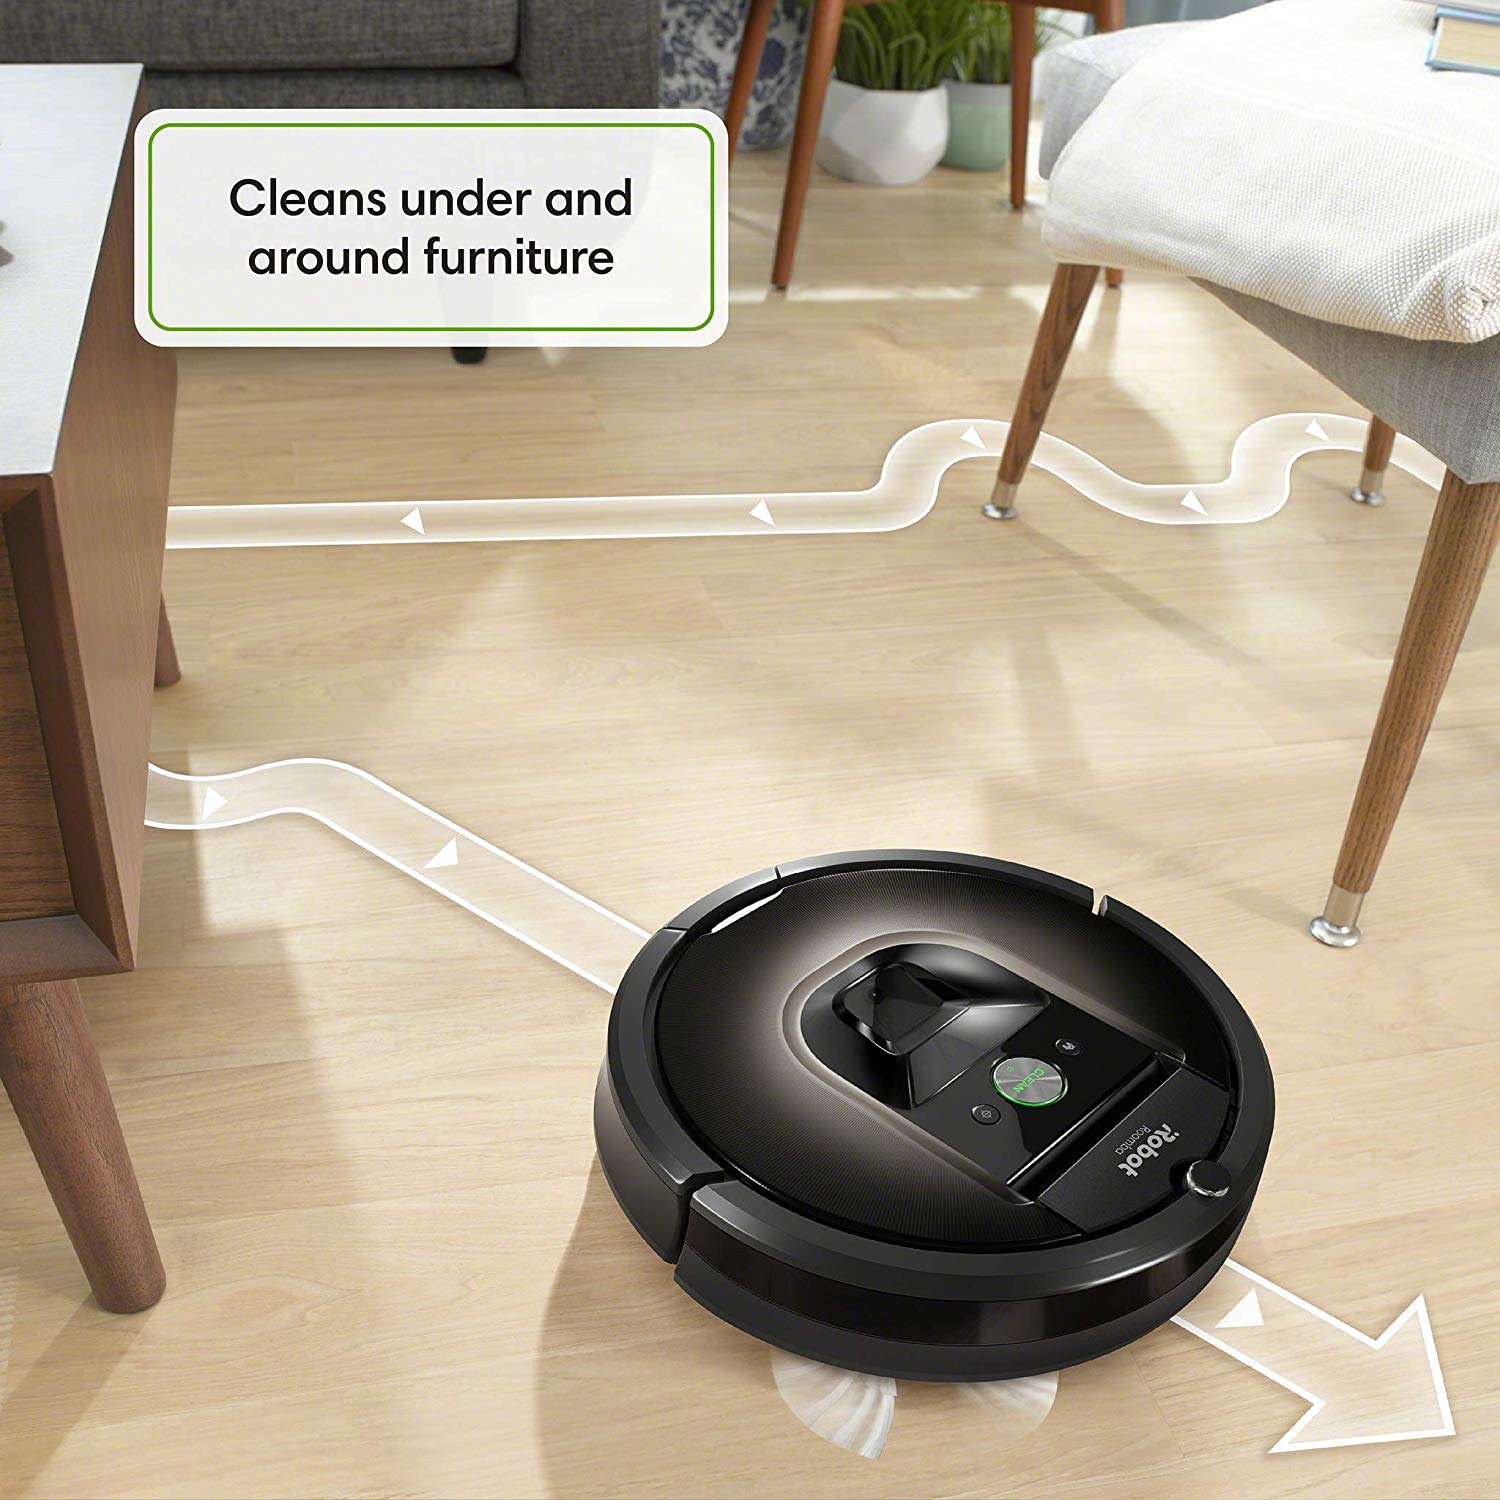 The iRobot 980 best robot vacuum cleaner cleaning under furnitures easily sucking out pets hairs and hardwood floors